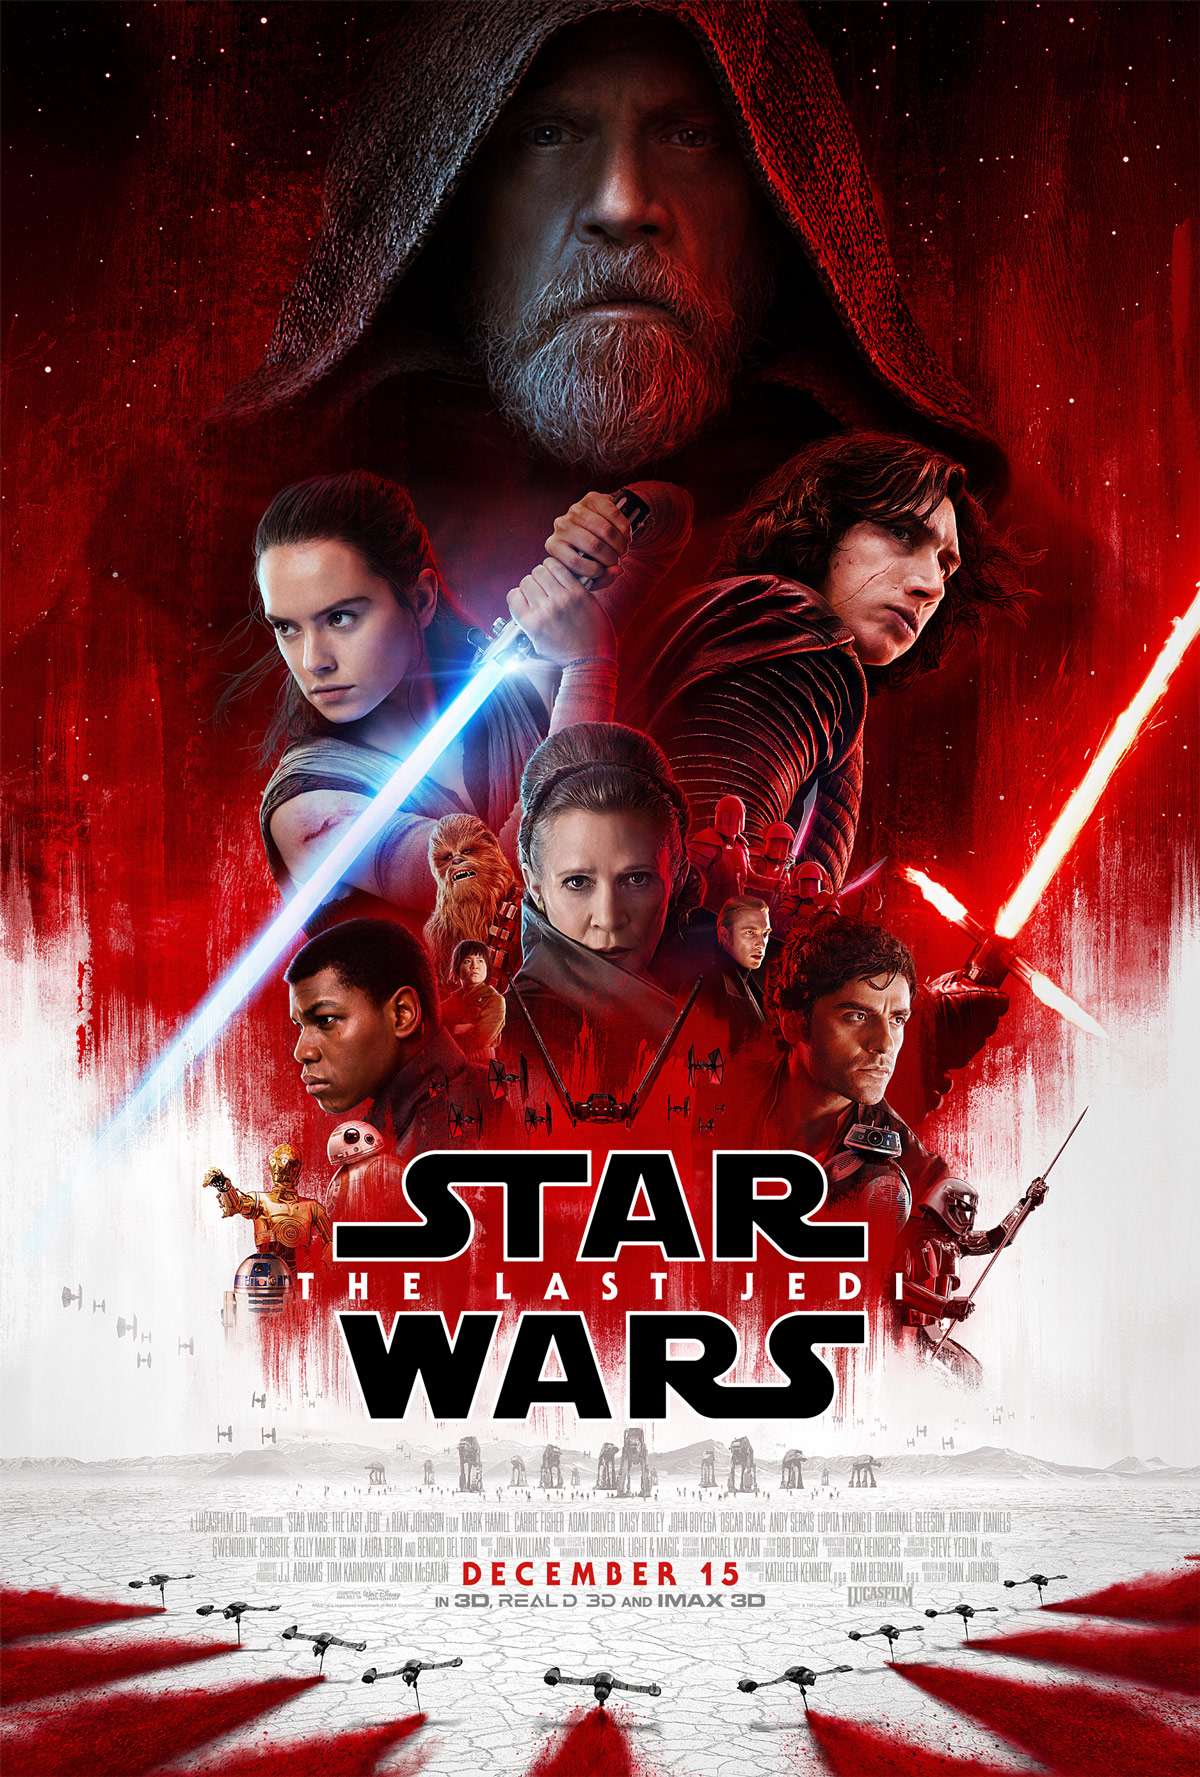 Star Wars Poster Star Wars The Last Jedi Theatrical Poster Revealed